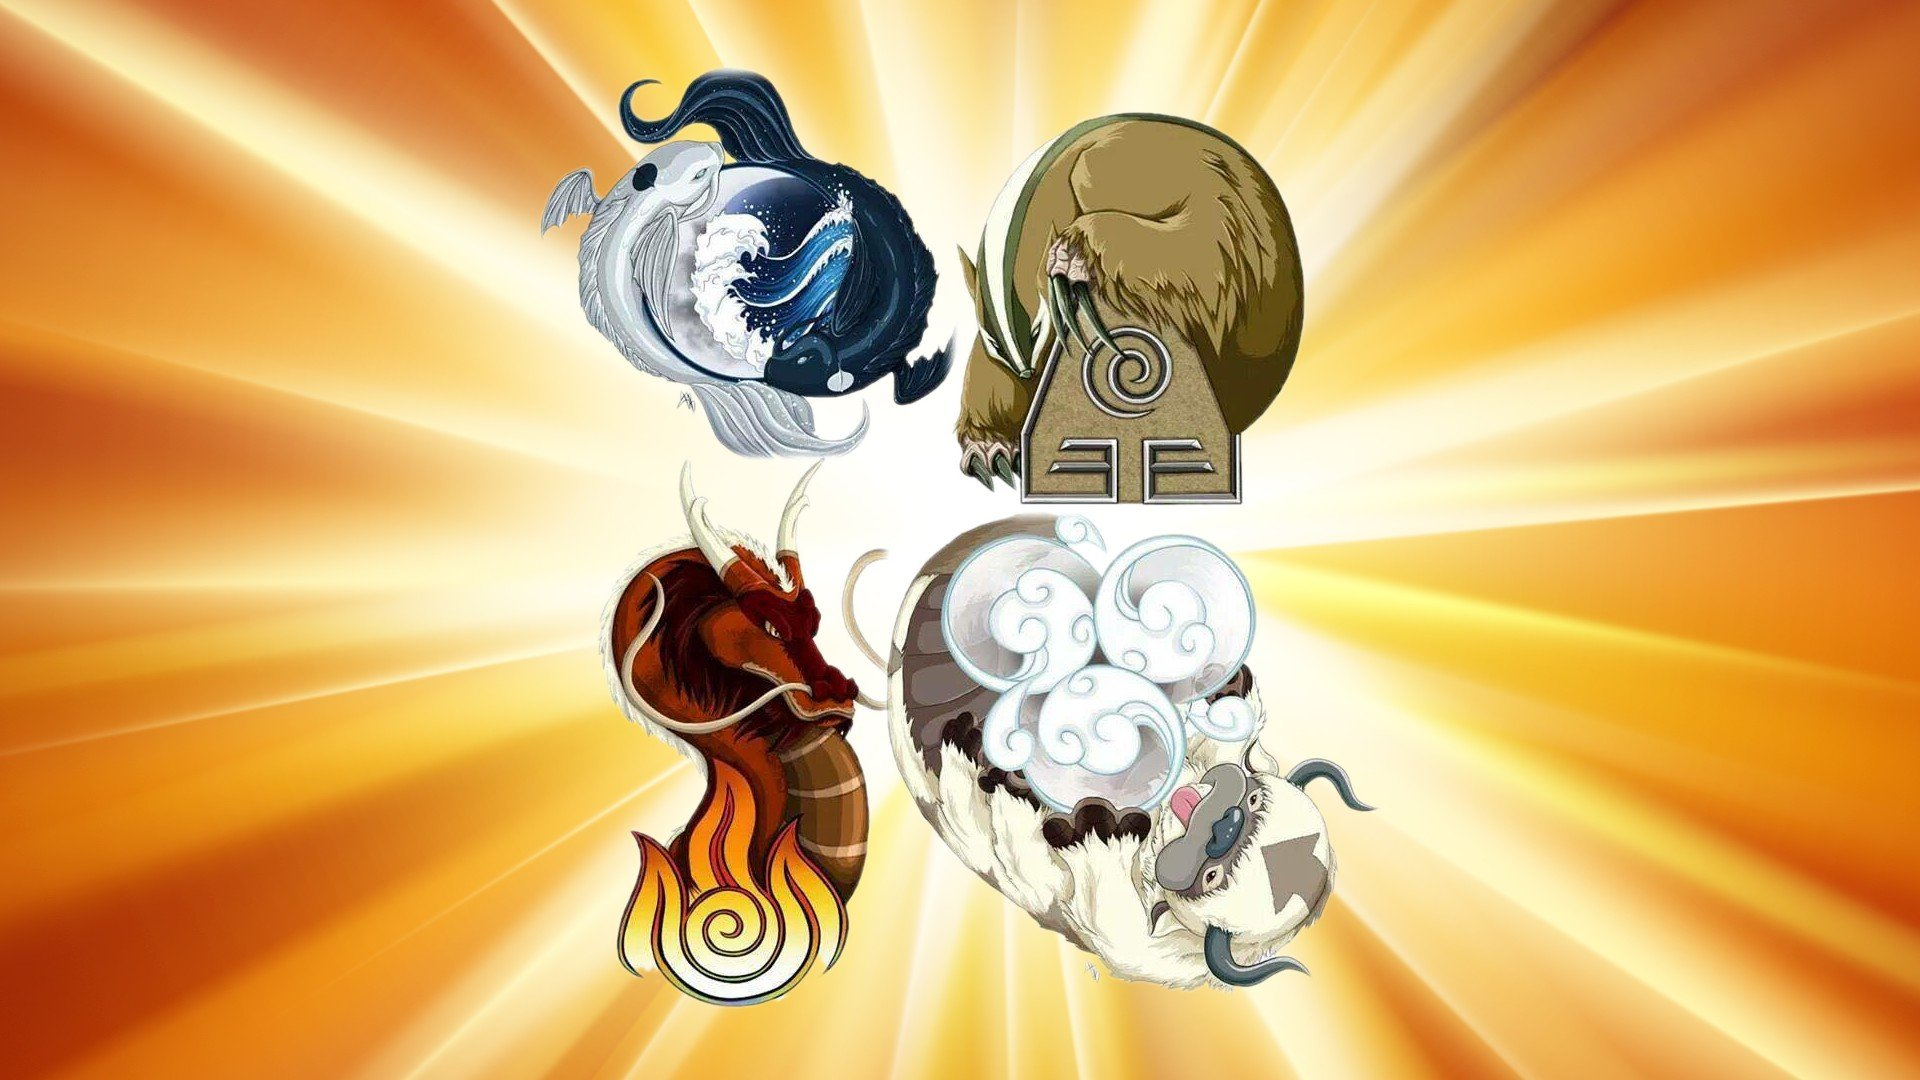 cartoon, nickelodeon, avatar: the last airbender hd wallpapers